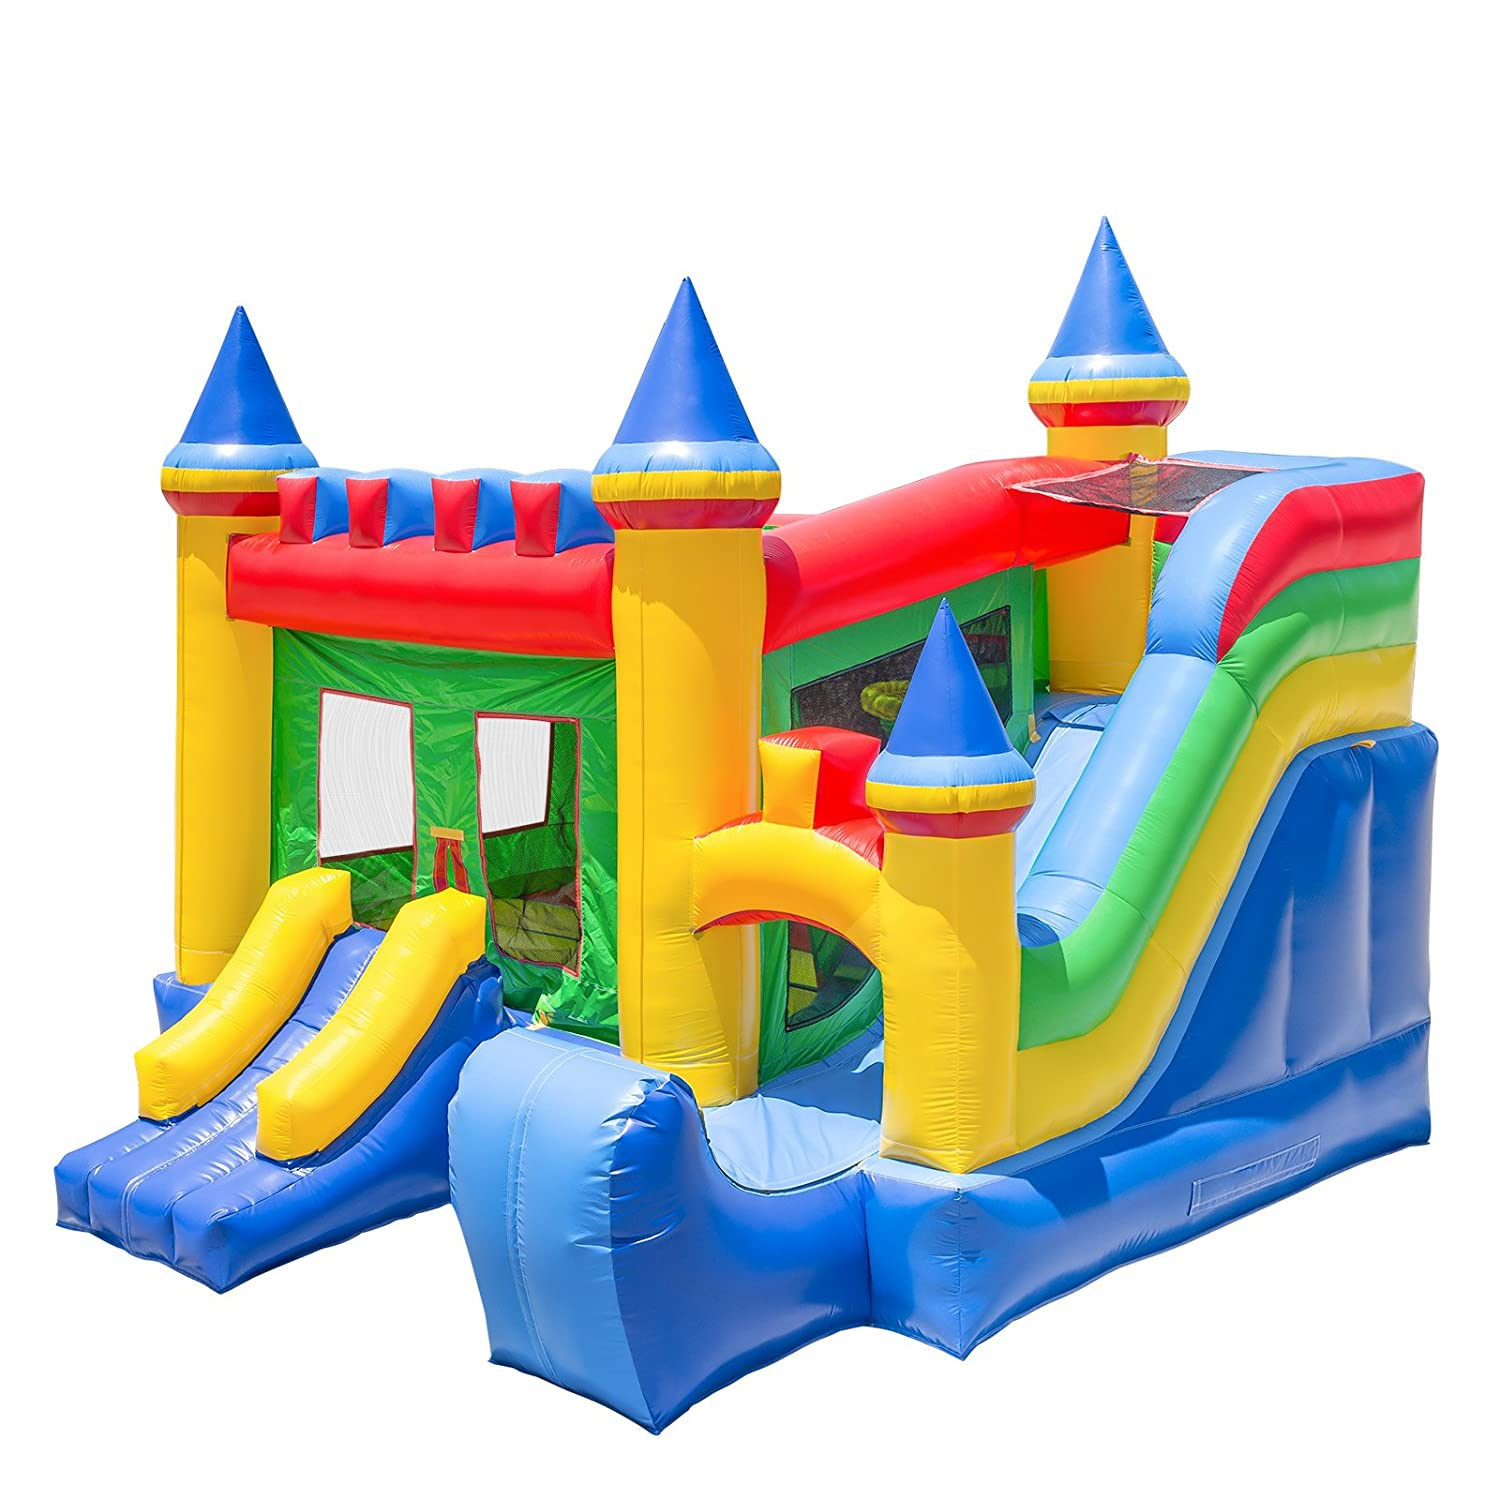 Enjoyable Inflatable Hq Commercial Grade Bouncing Castle Kingdom Bounce House 100 Pvc With Blower And Slide Interior Design Ideas Gentotryabchikinfo